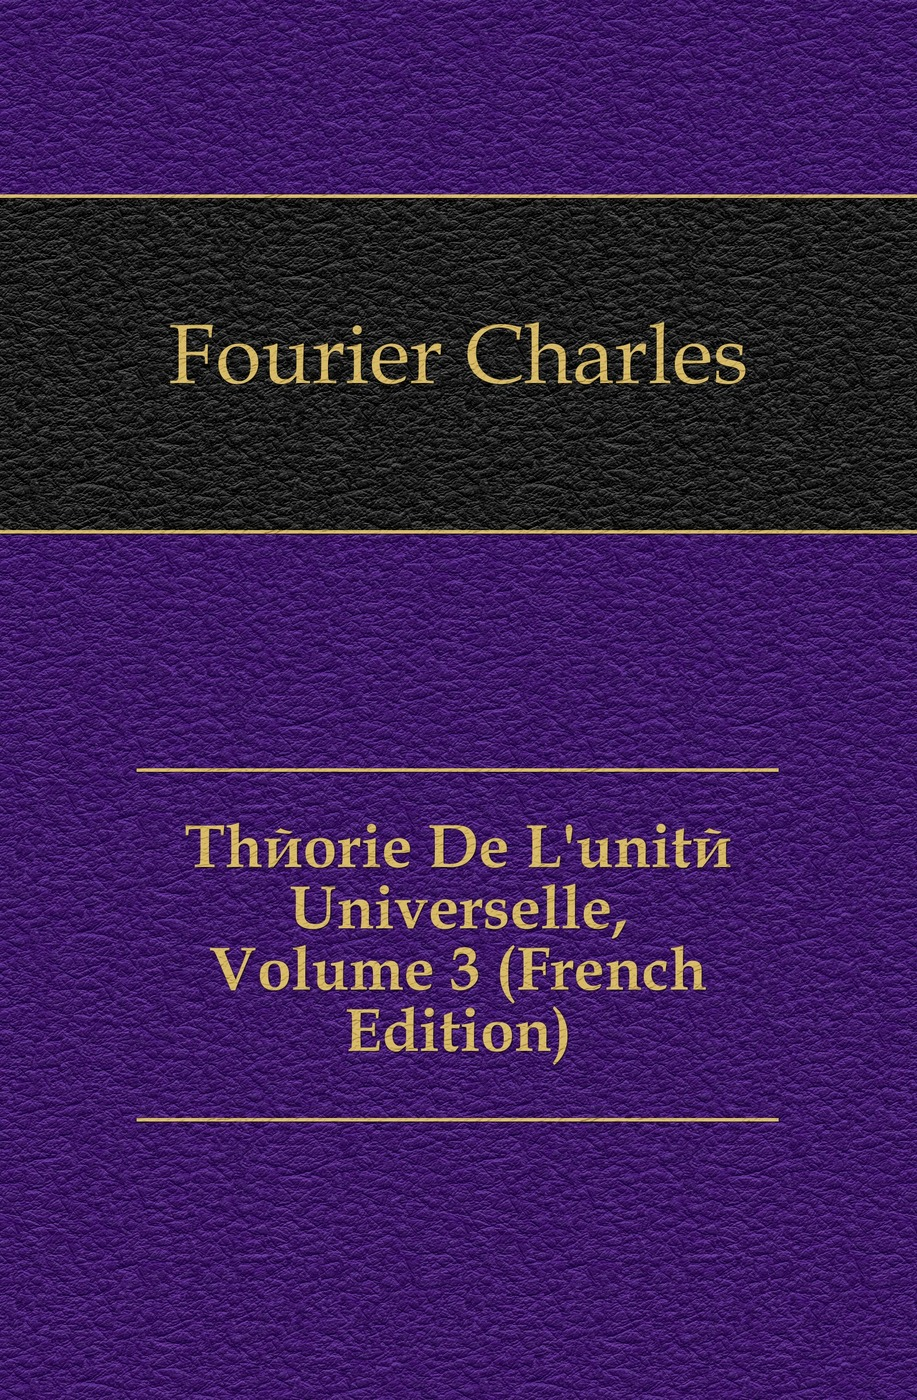 Fourier Charles Theorie De L'unite Universelle, Volume 3 (French Edition) charles blanc les beaux arts a l exposition universelle de 1878 french edition